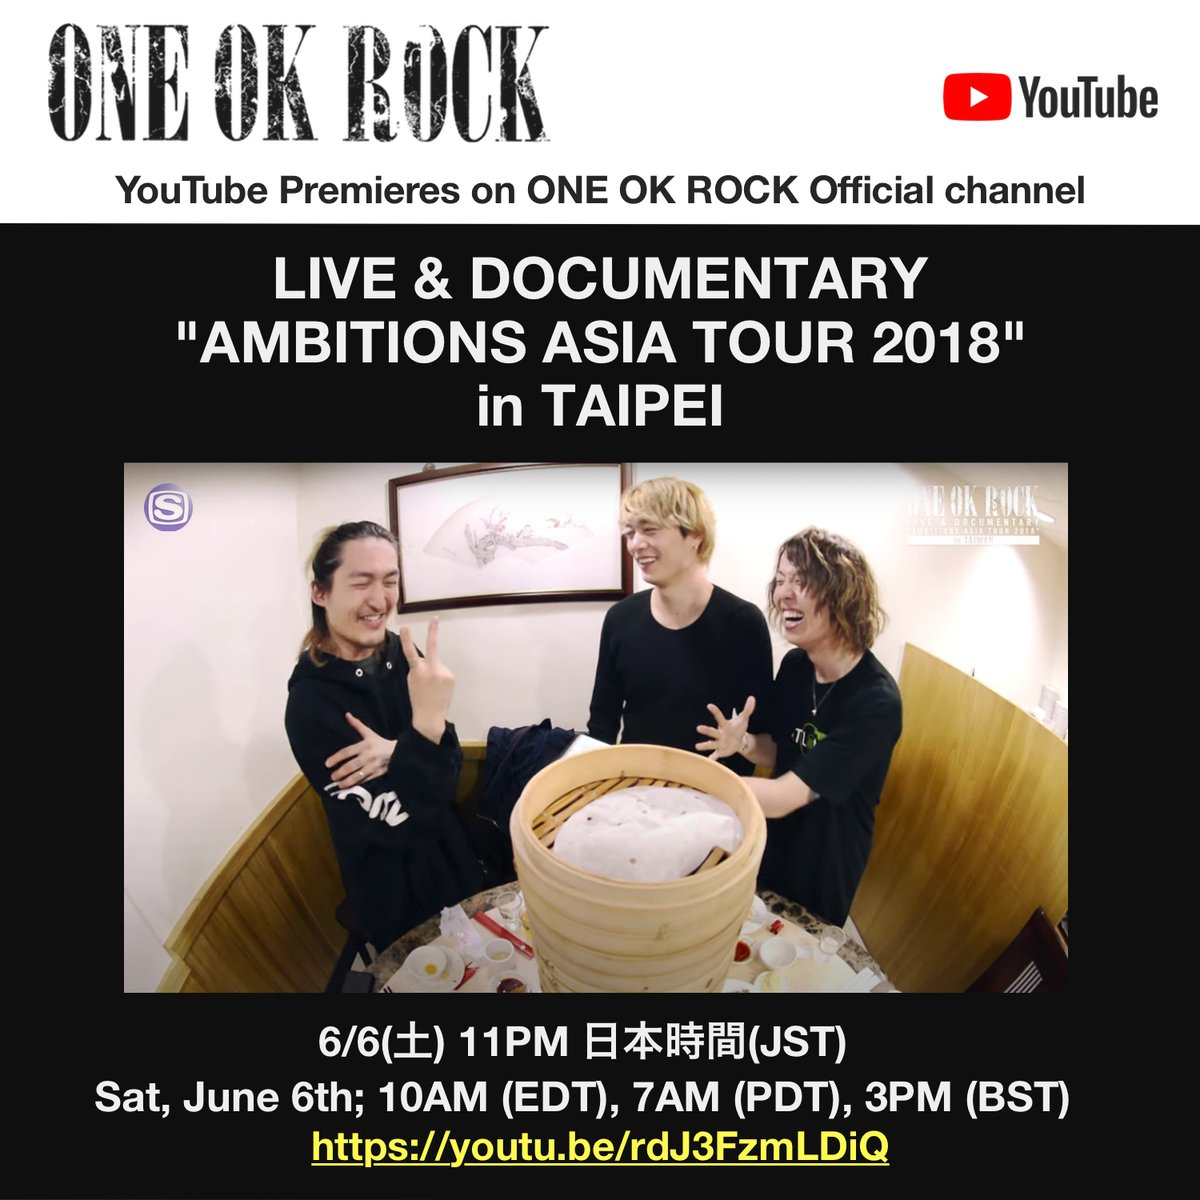 ONE OK ROCK LIVE & DOCUMENTARY AMBITIONS ASIA TOUR 2018 in TAIPEI Saturday, June 6th 11:00PM (JST) 10:00 AM (EDT), 7:00 AM (PDT), 3:00 PM (BST) ※English subtitles will be available. youtu.be/rdJ3FzmLDiQ #ONEOKROCK